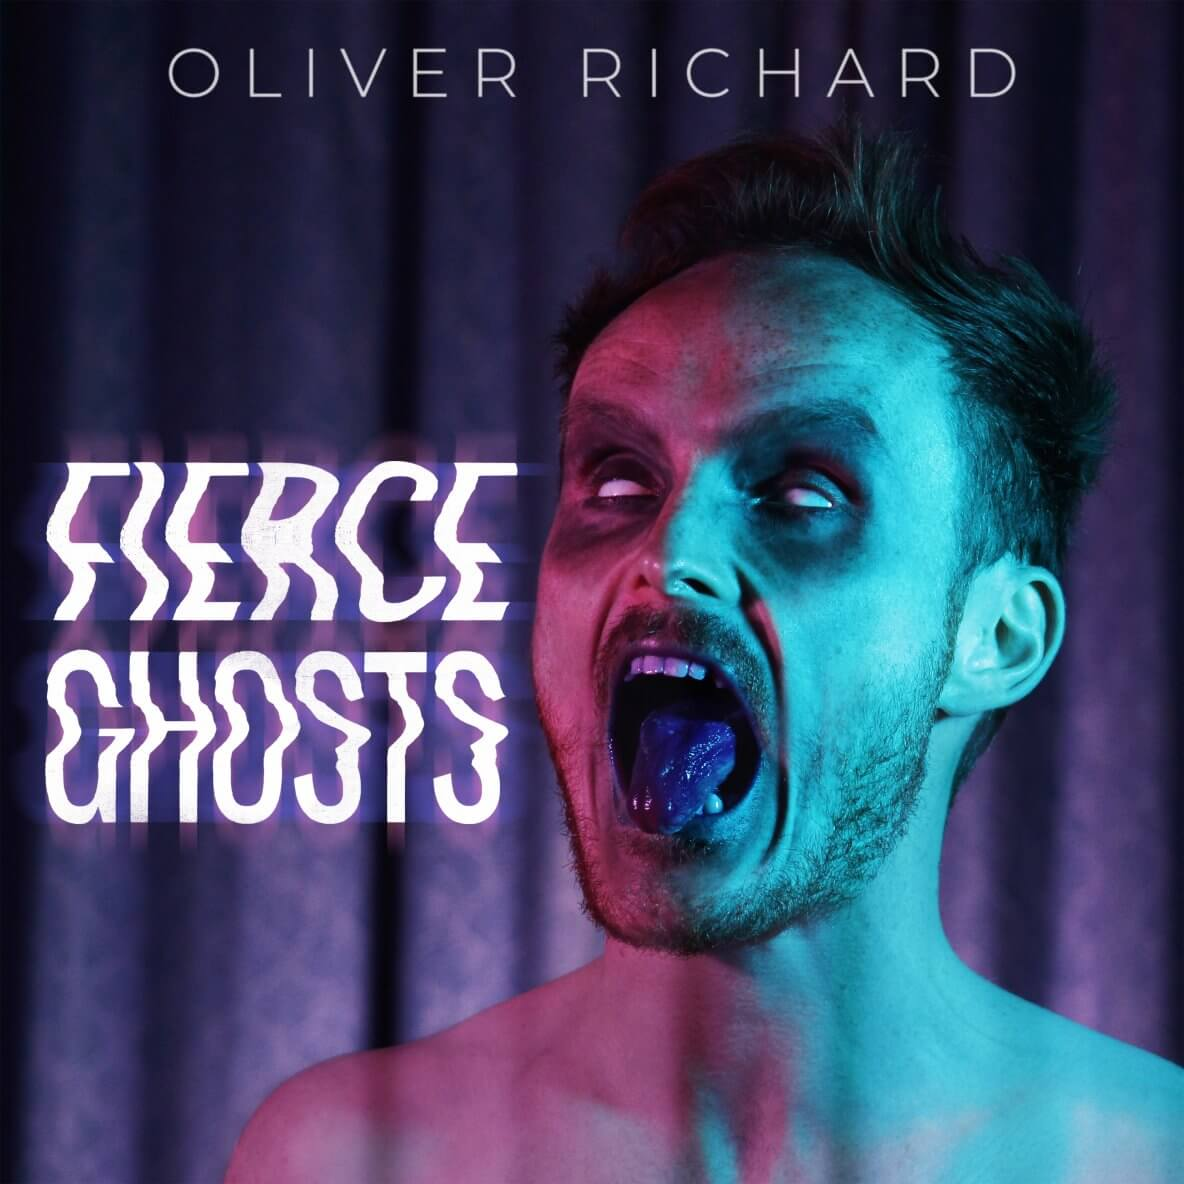 Oliver Richard Fierce Ghosts 2020